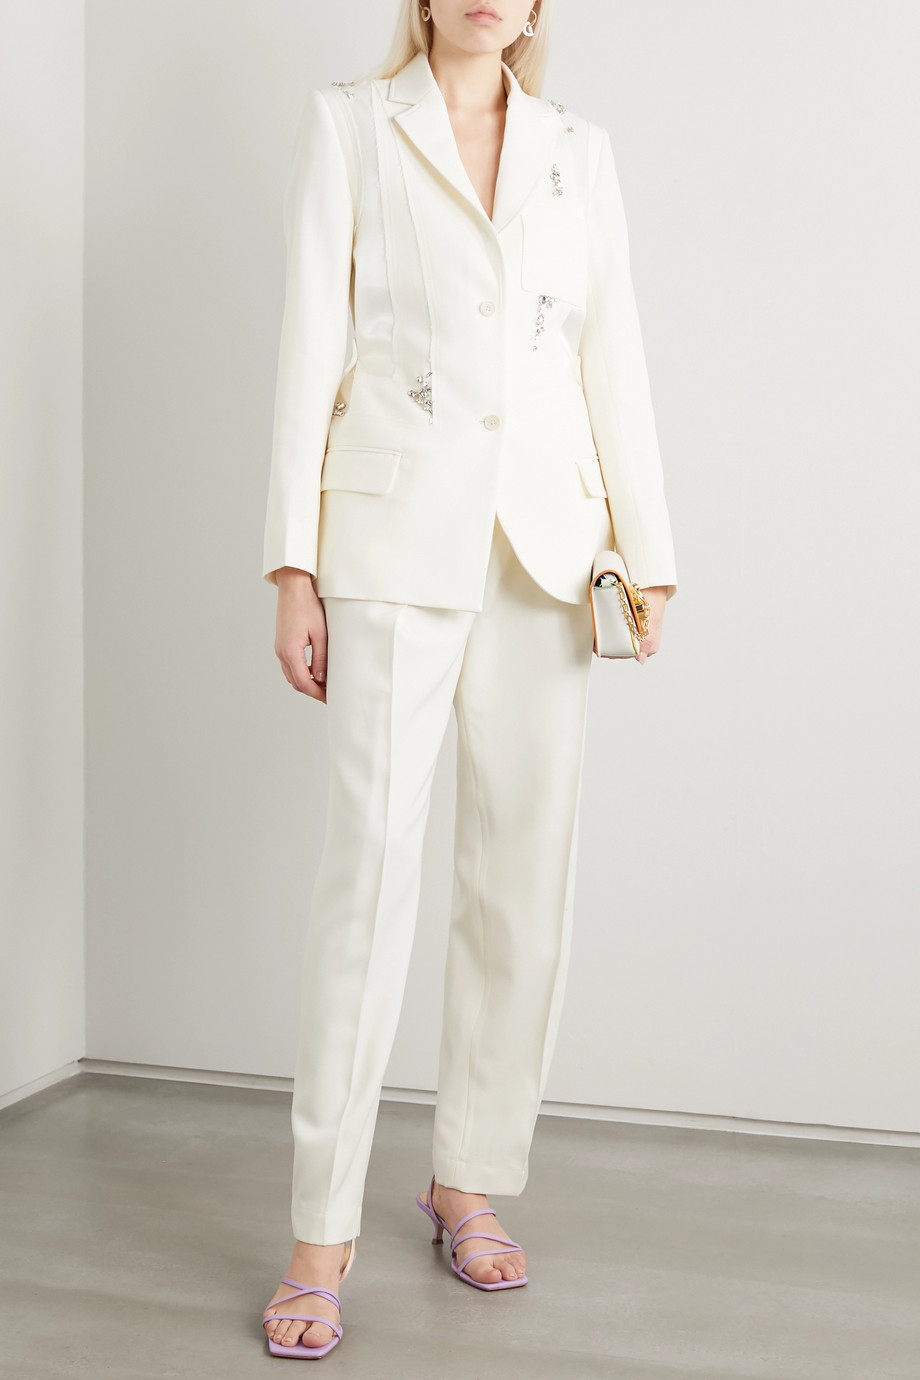 JW Anderson Crystal-embellished paneled satin and wool-crepe blazer